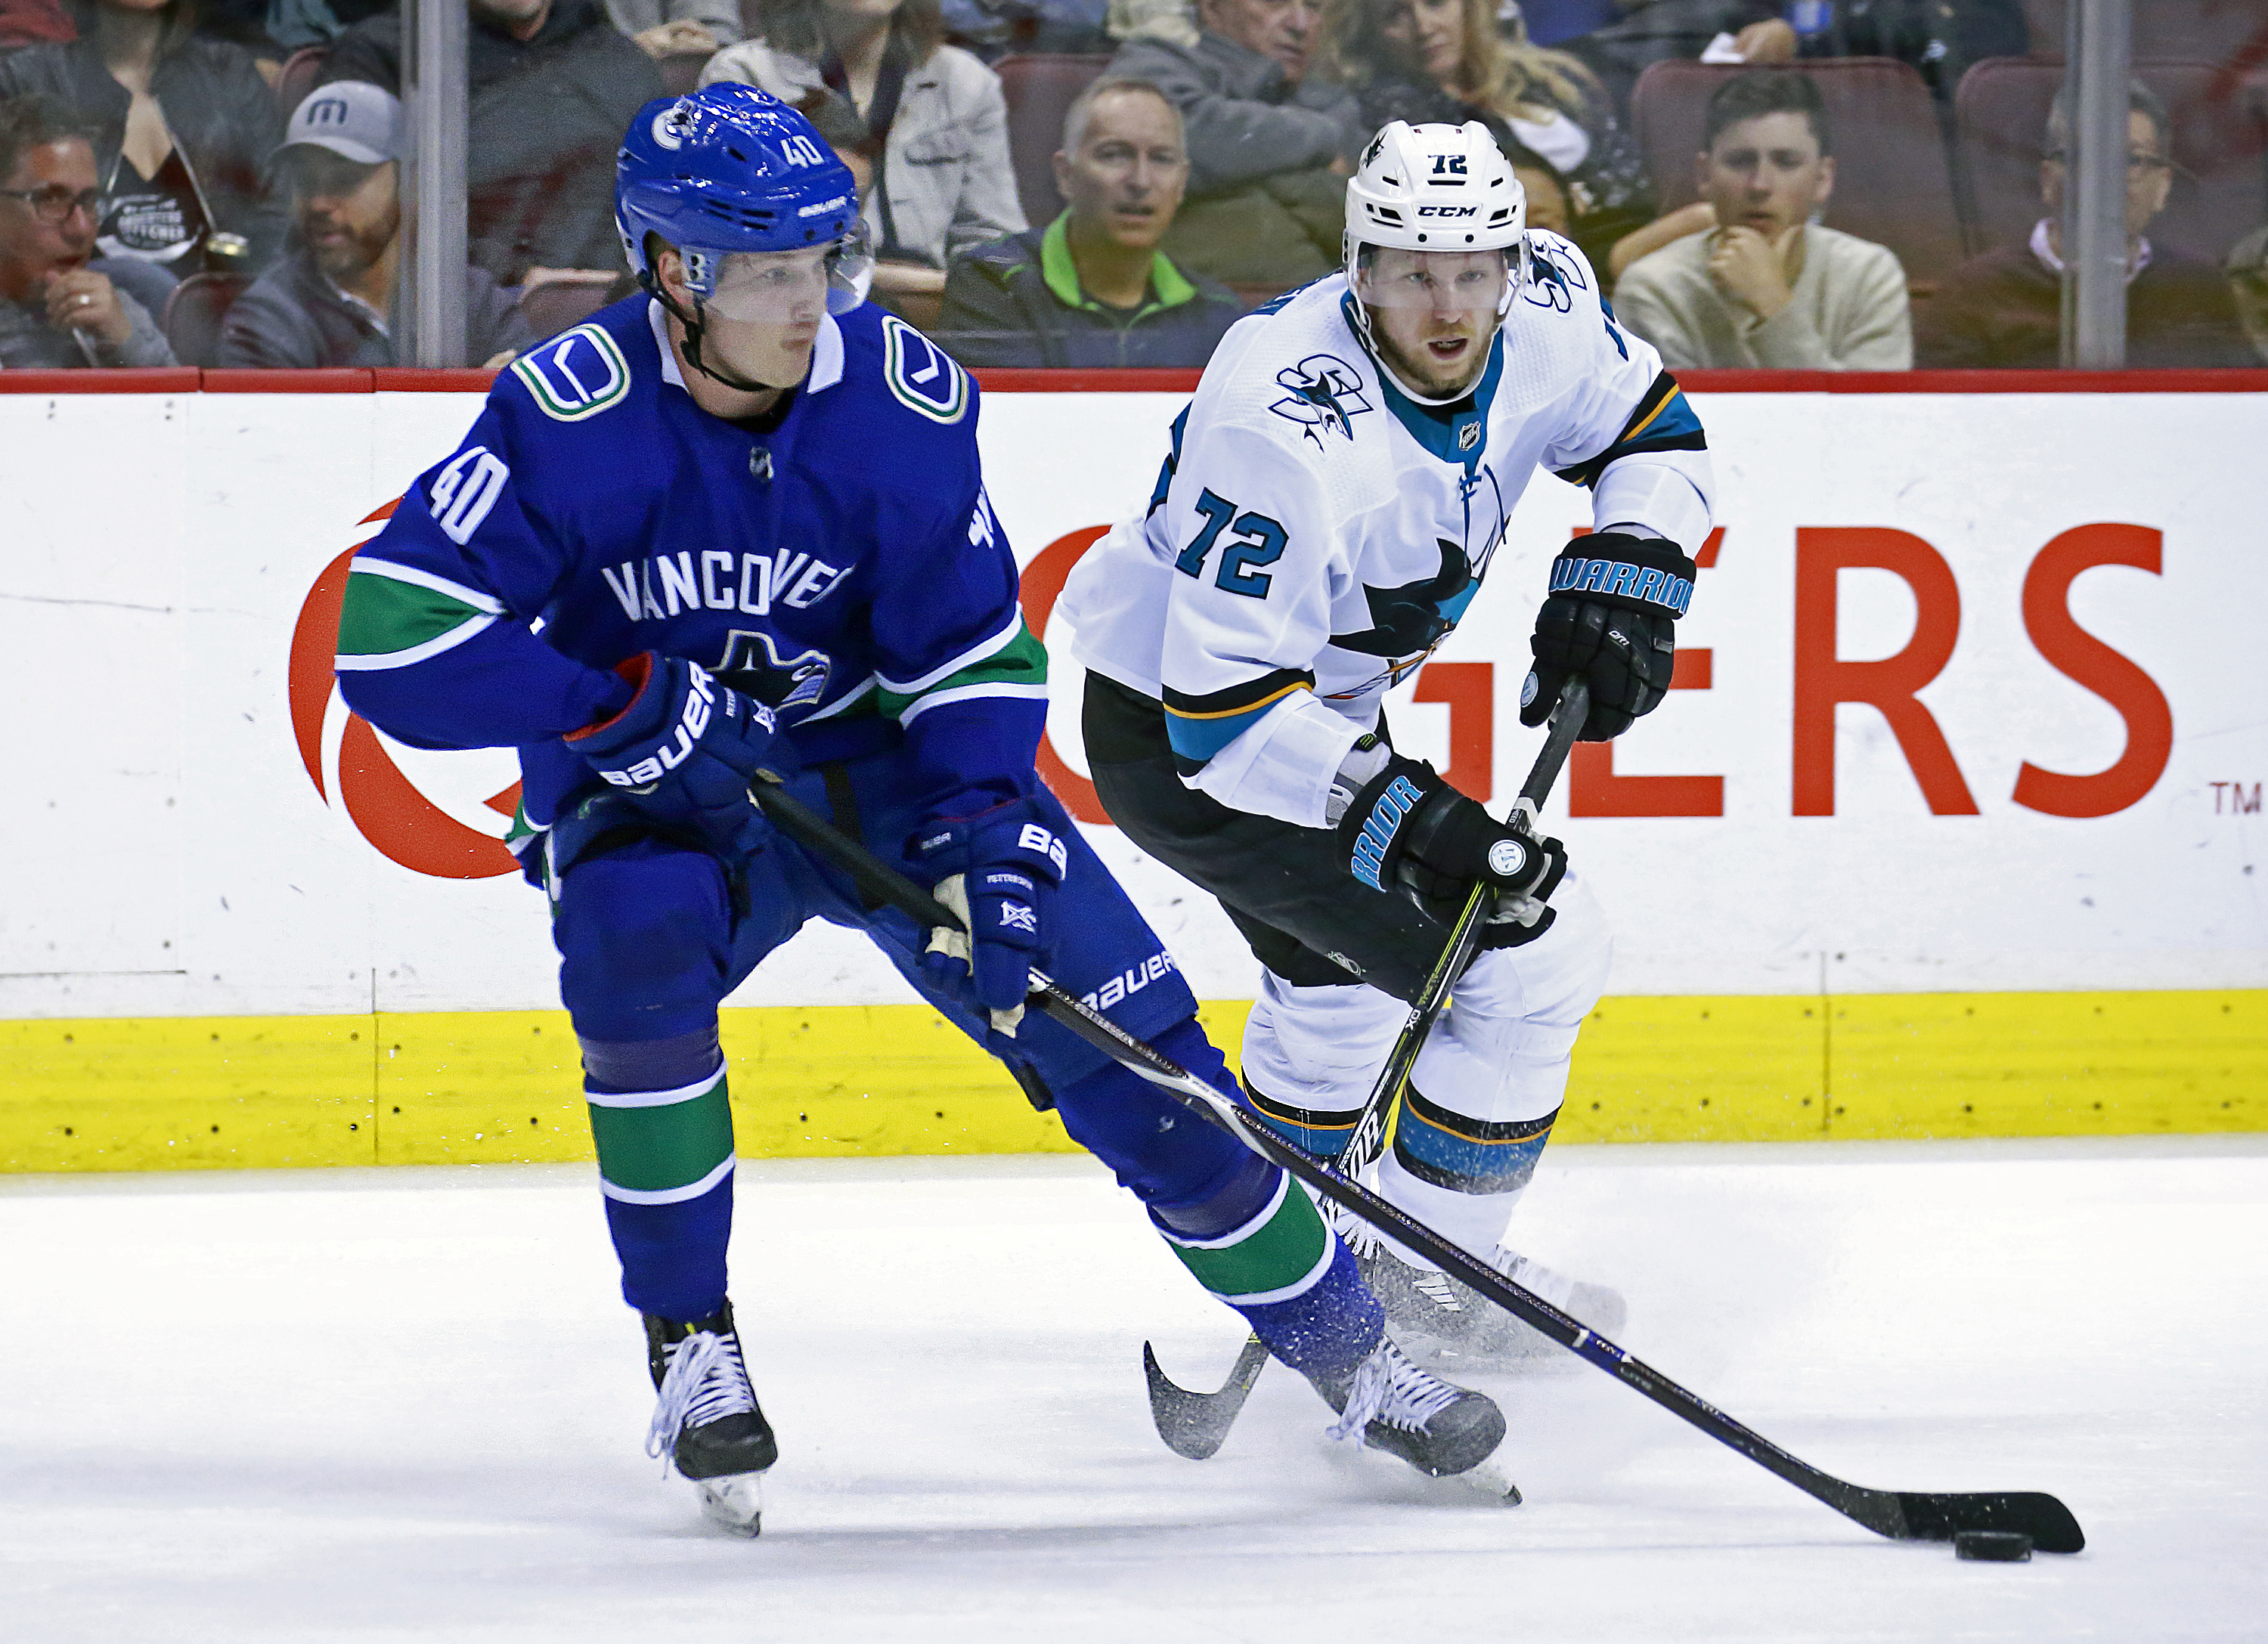 VANCOUVER, BC - APRIL 2: Tim Heed #72 of the San Jose Sharks checks Elias Pettersson #40 of the Vancouver Canucks during their NHL game at Rogers Arena April 2, 2019 in Vancouver, British Columbia, Canada. Vancouver won 4-2.